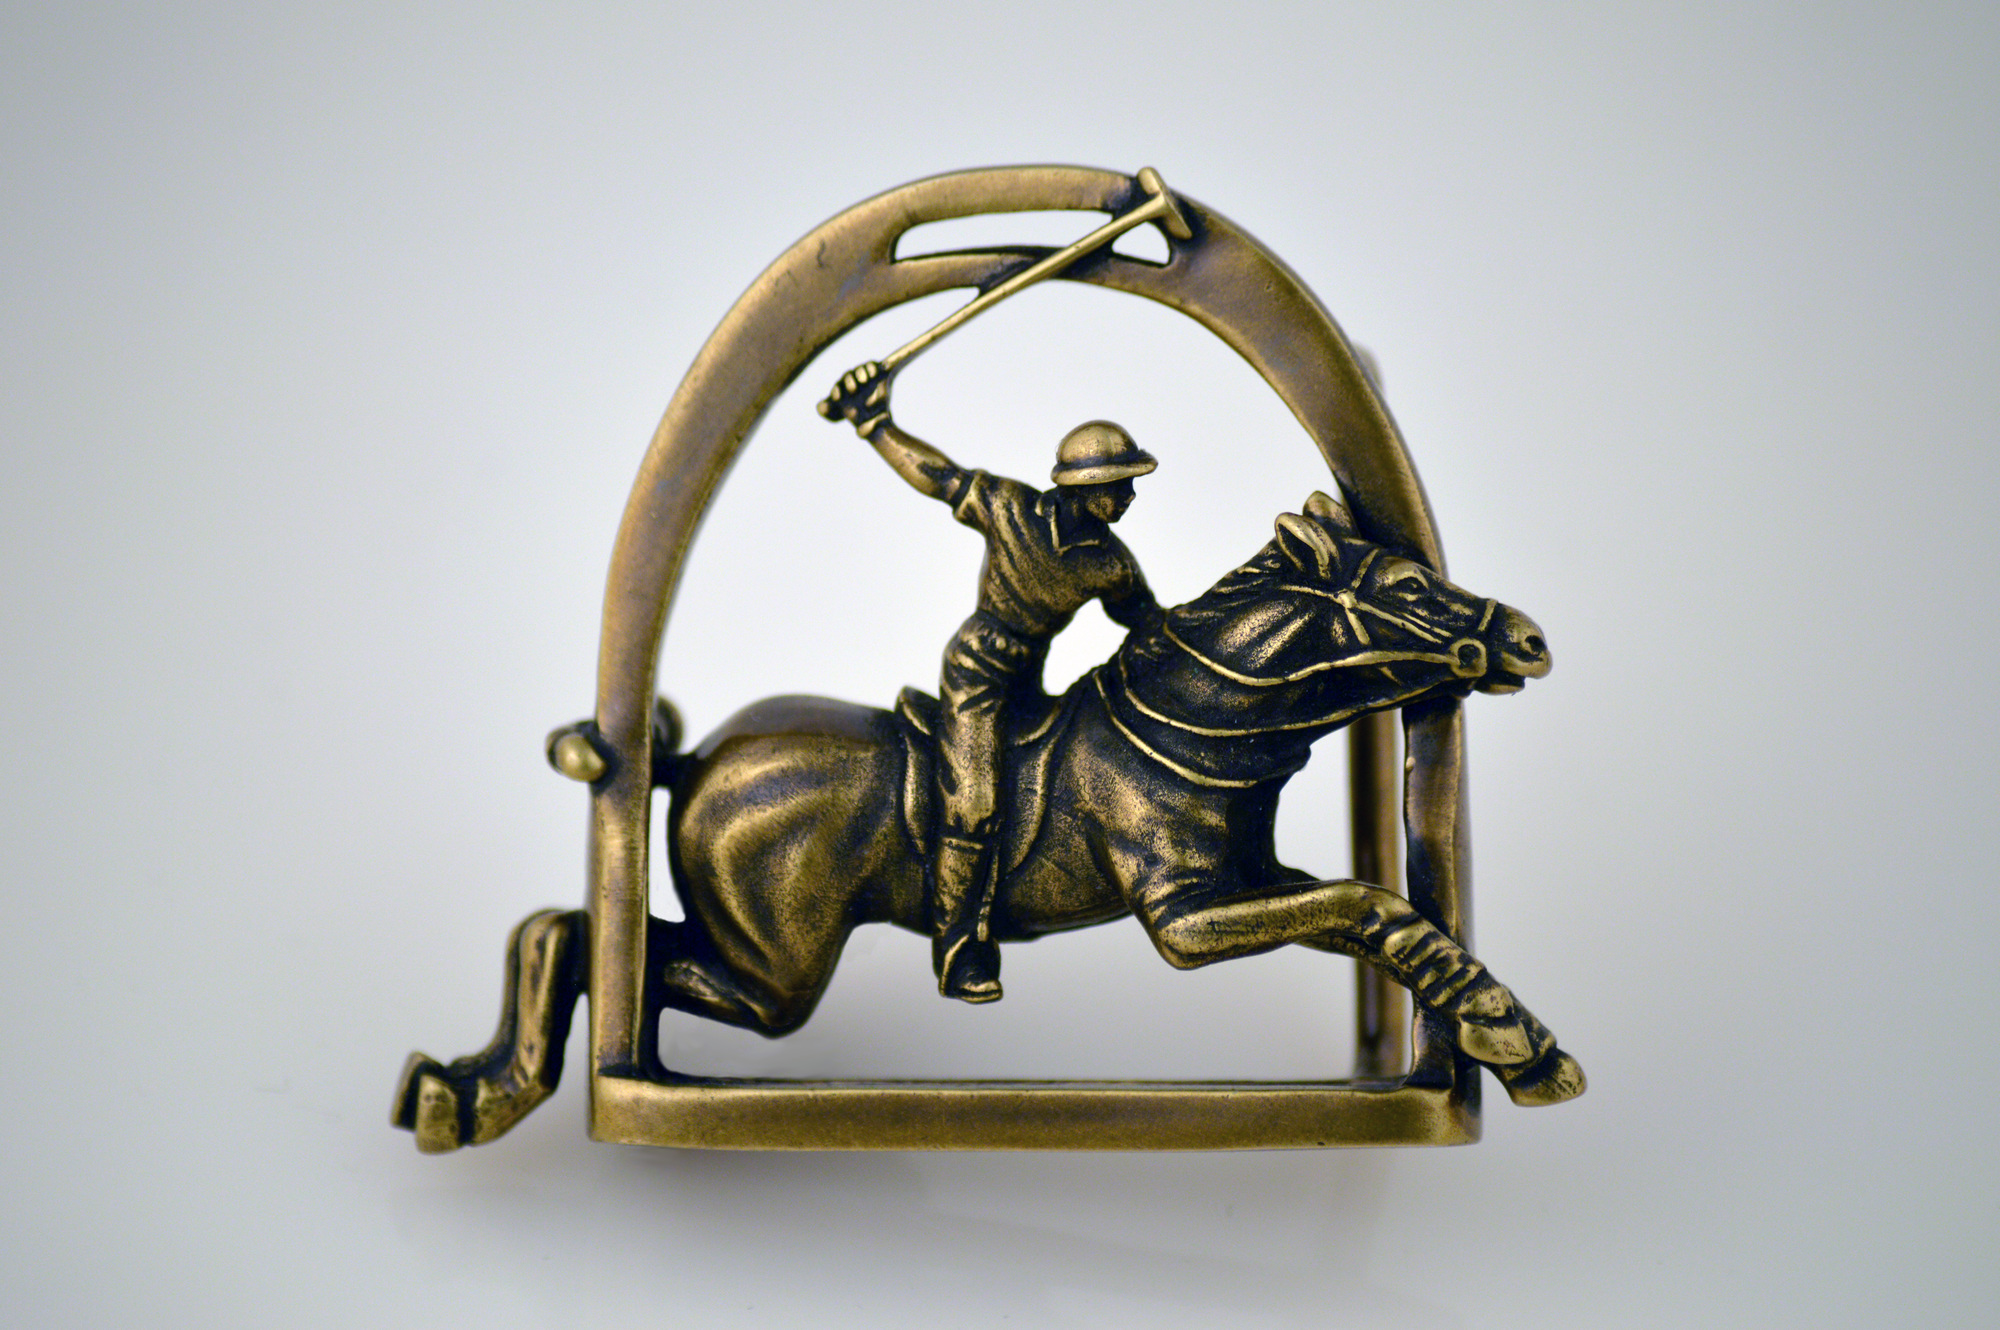 bronze horseshoe rider